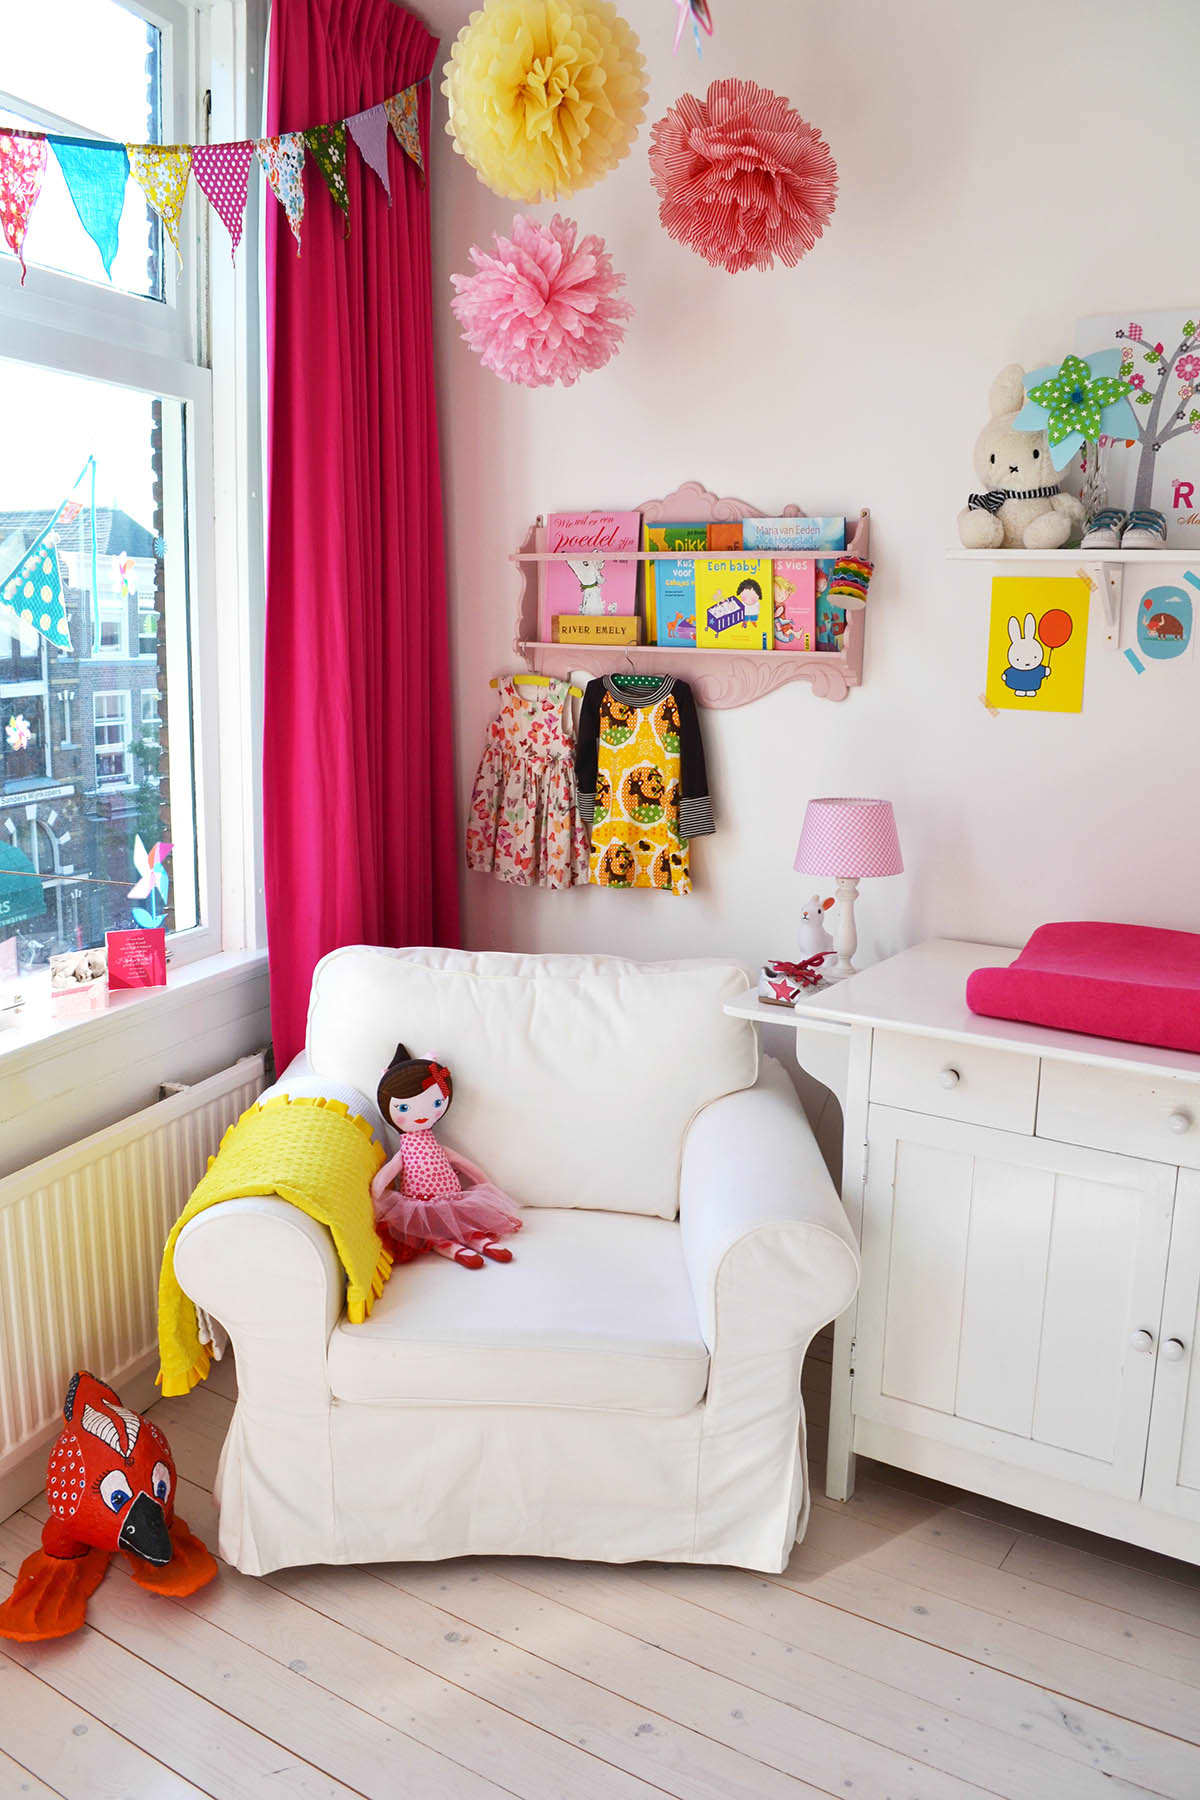 A No-Rules Nursery in the Netherlands: gallery image 3